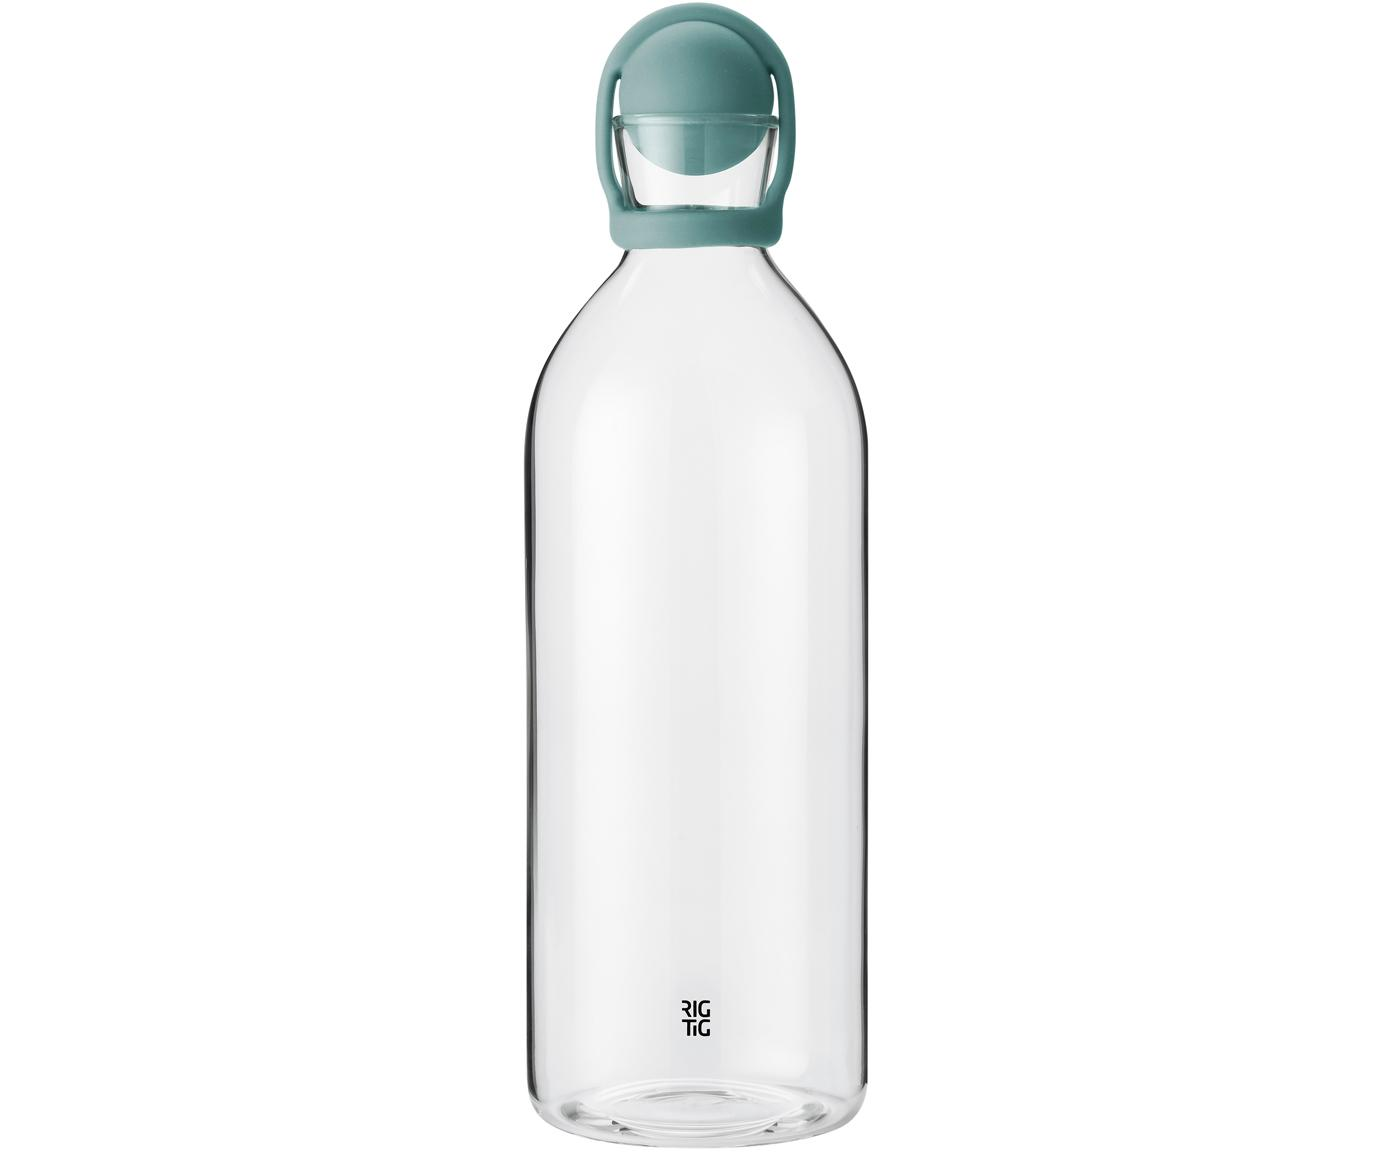 Karafka do wody Cool-It, Turkusowy, transparentny, 1,5 l